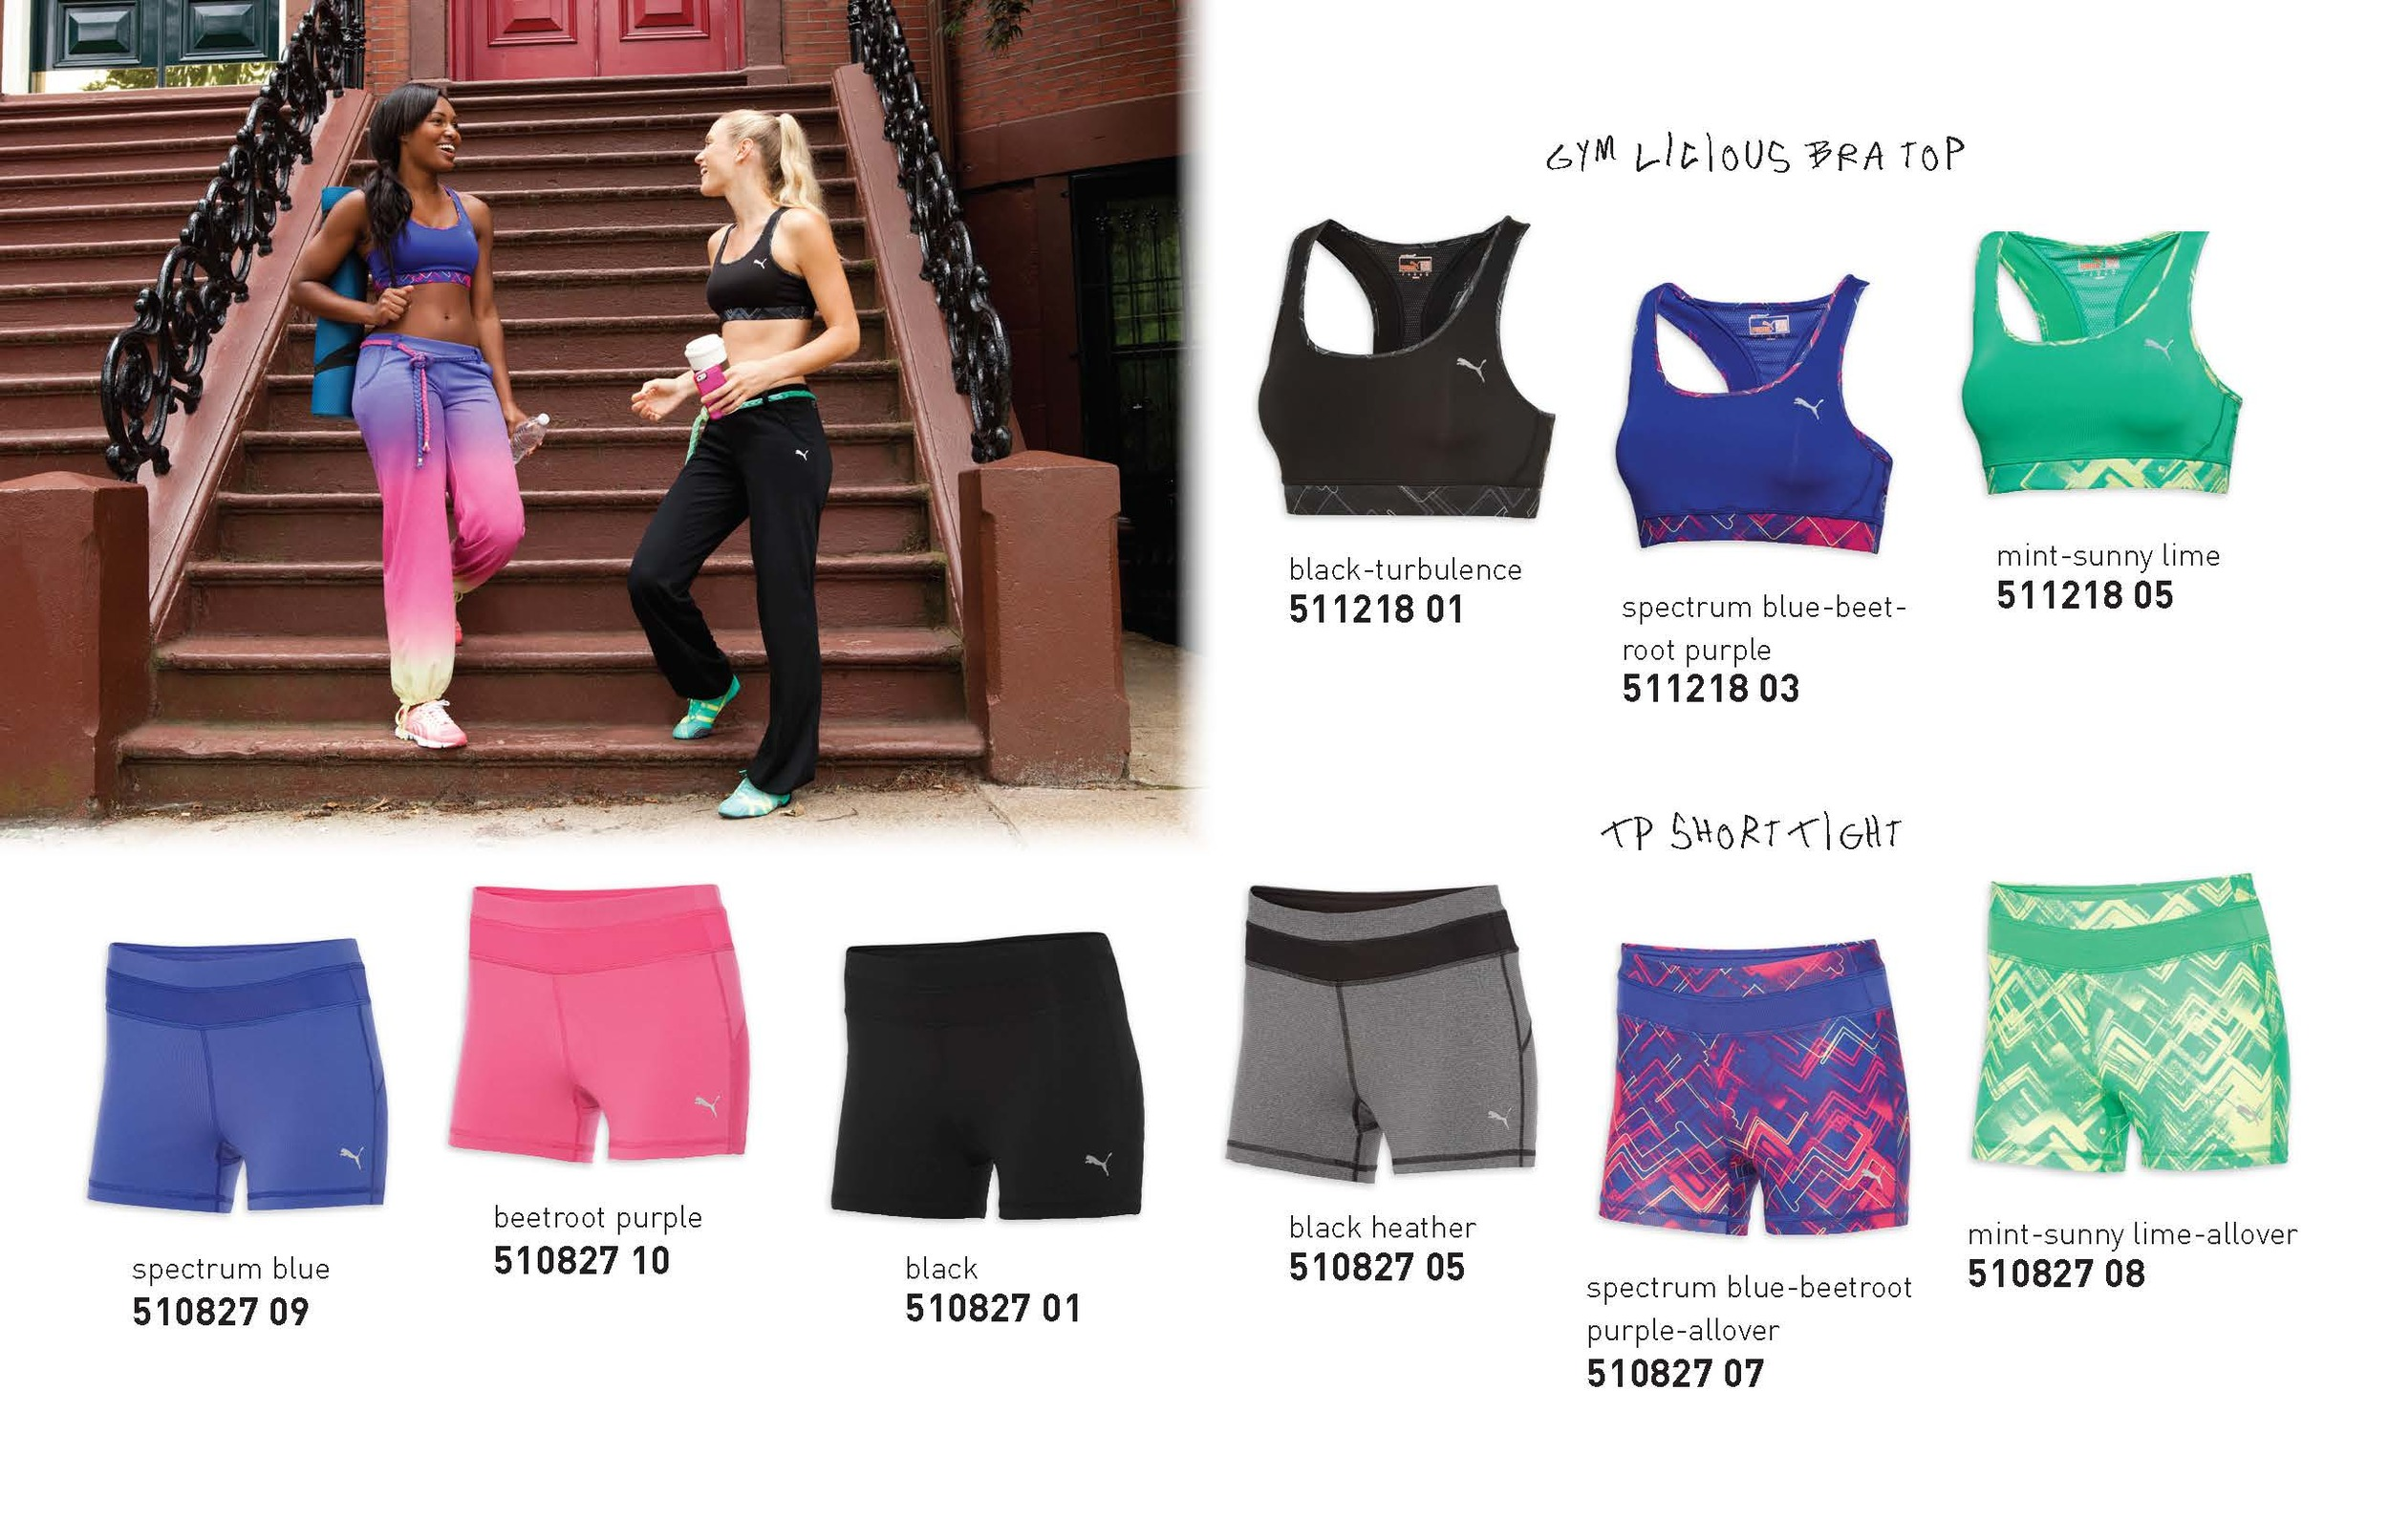 PUMA_booklet_7-30-13_HIRES_view_Page_16.jpg